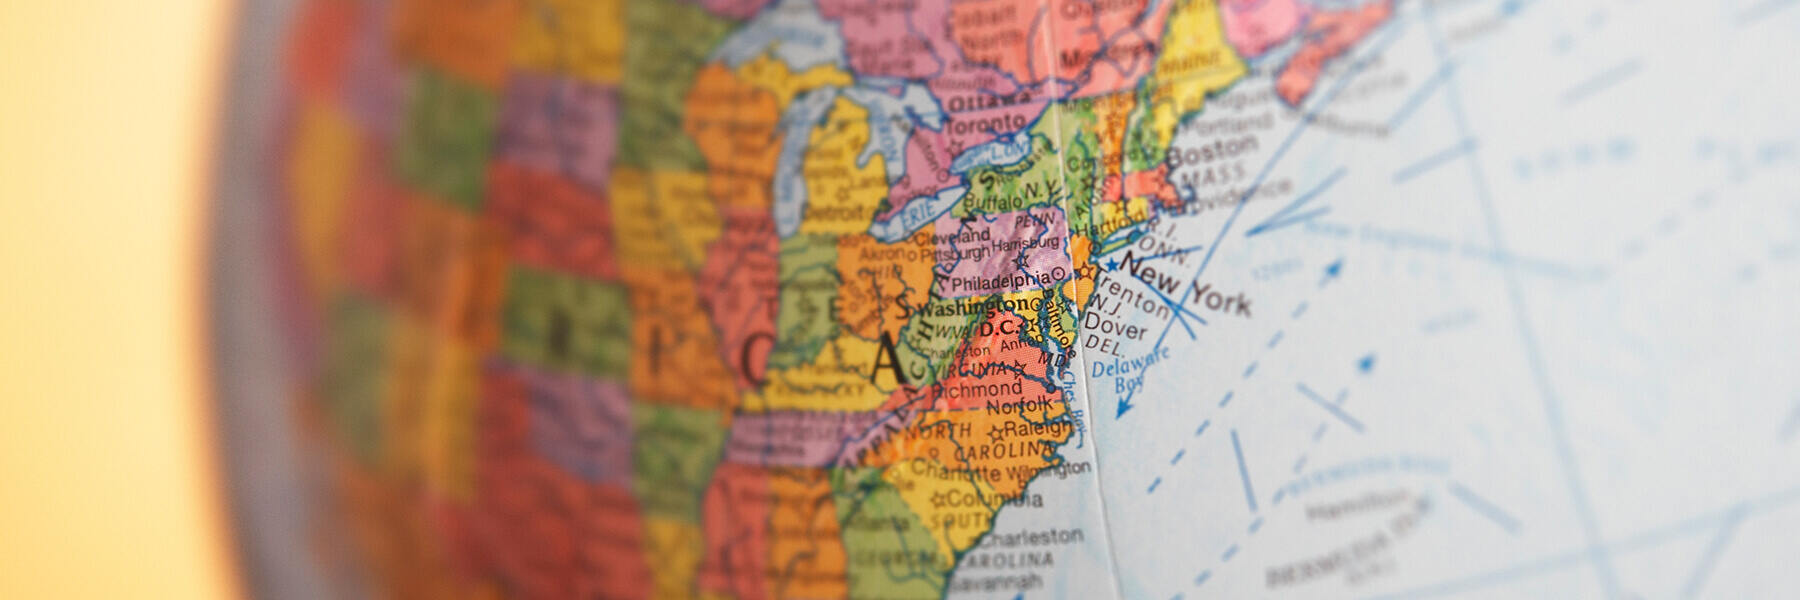 A close-up of a world globe, focusing on the east coast of the United States of America.